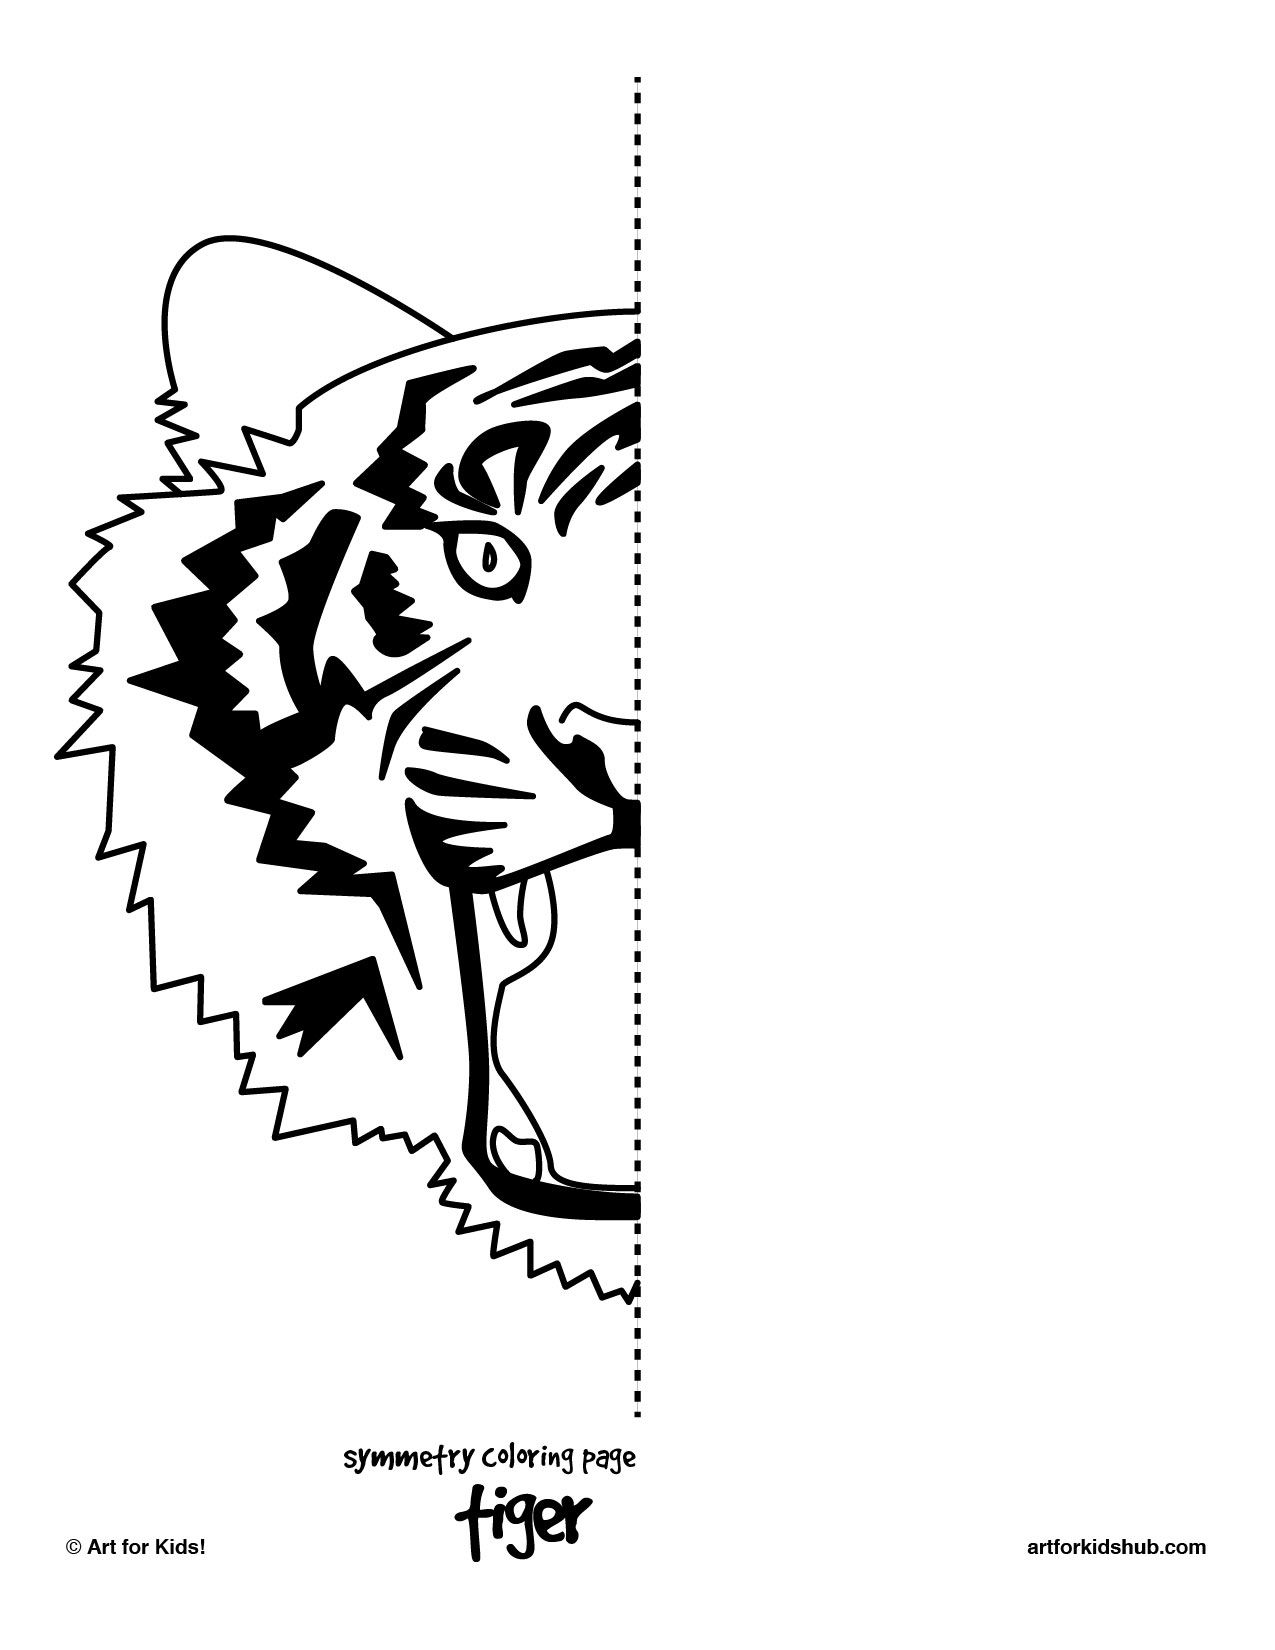 small resolution of Symmetry ART Activity - 5 Free Coloring Pages - Art for Kids   Symmetry  art